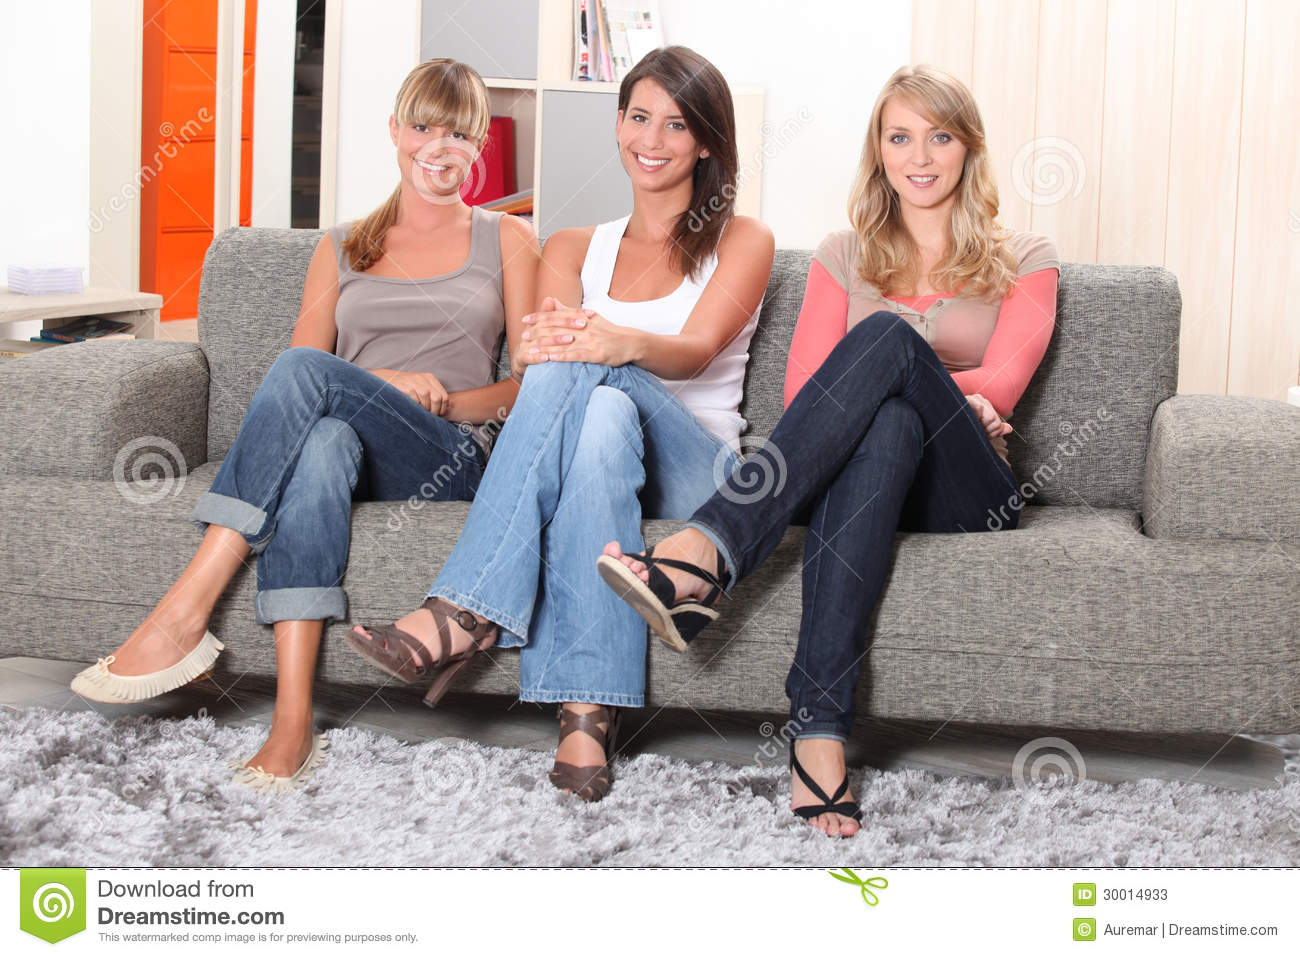 Stock Images White Man Sitting Chair Relaxed Image18745874 together with Royalty Free Stock Photos Strict Girl Black Jacket Image6826658 as well S101899 further Elaine Chao likewise Tropical Beach Photos Desktop. on united states office chair